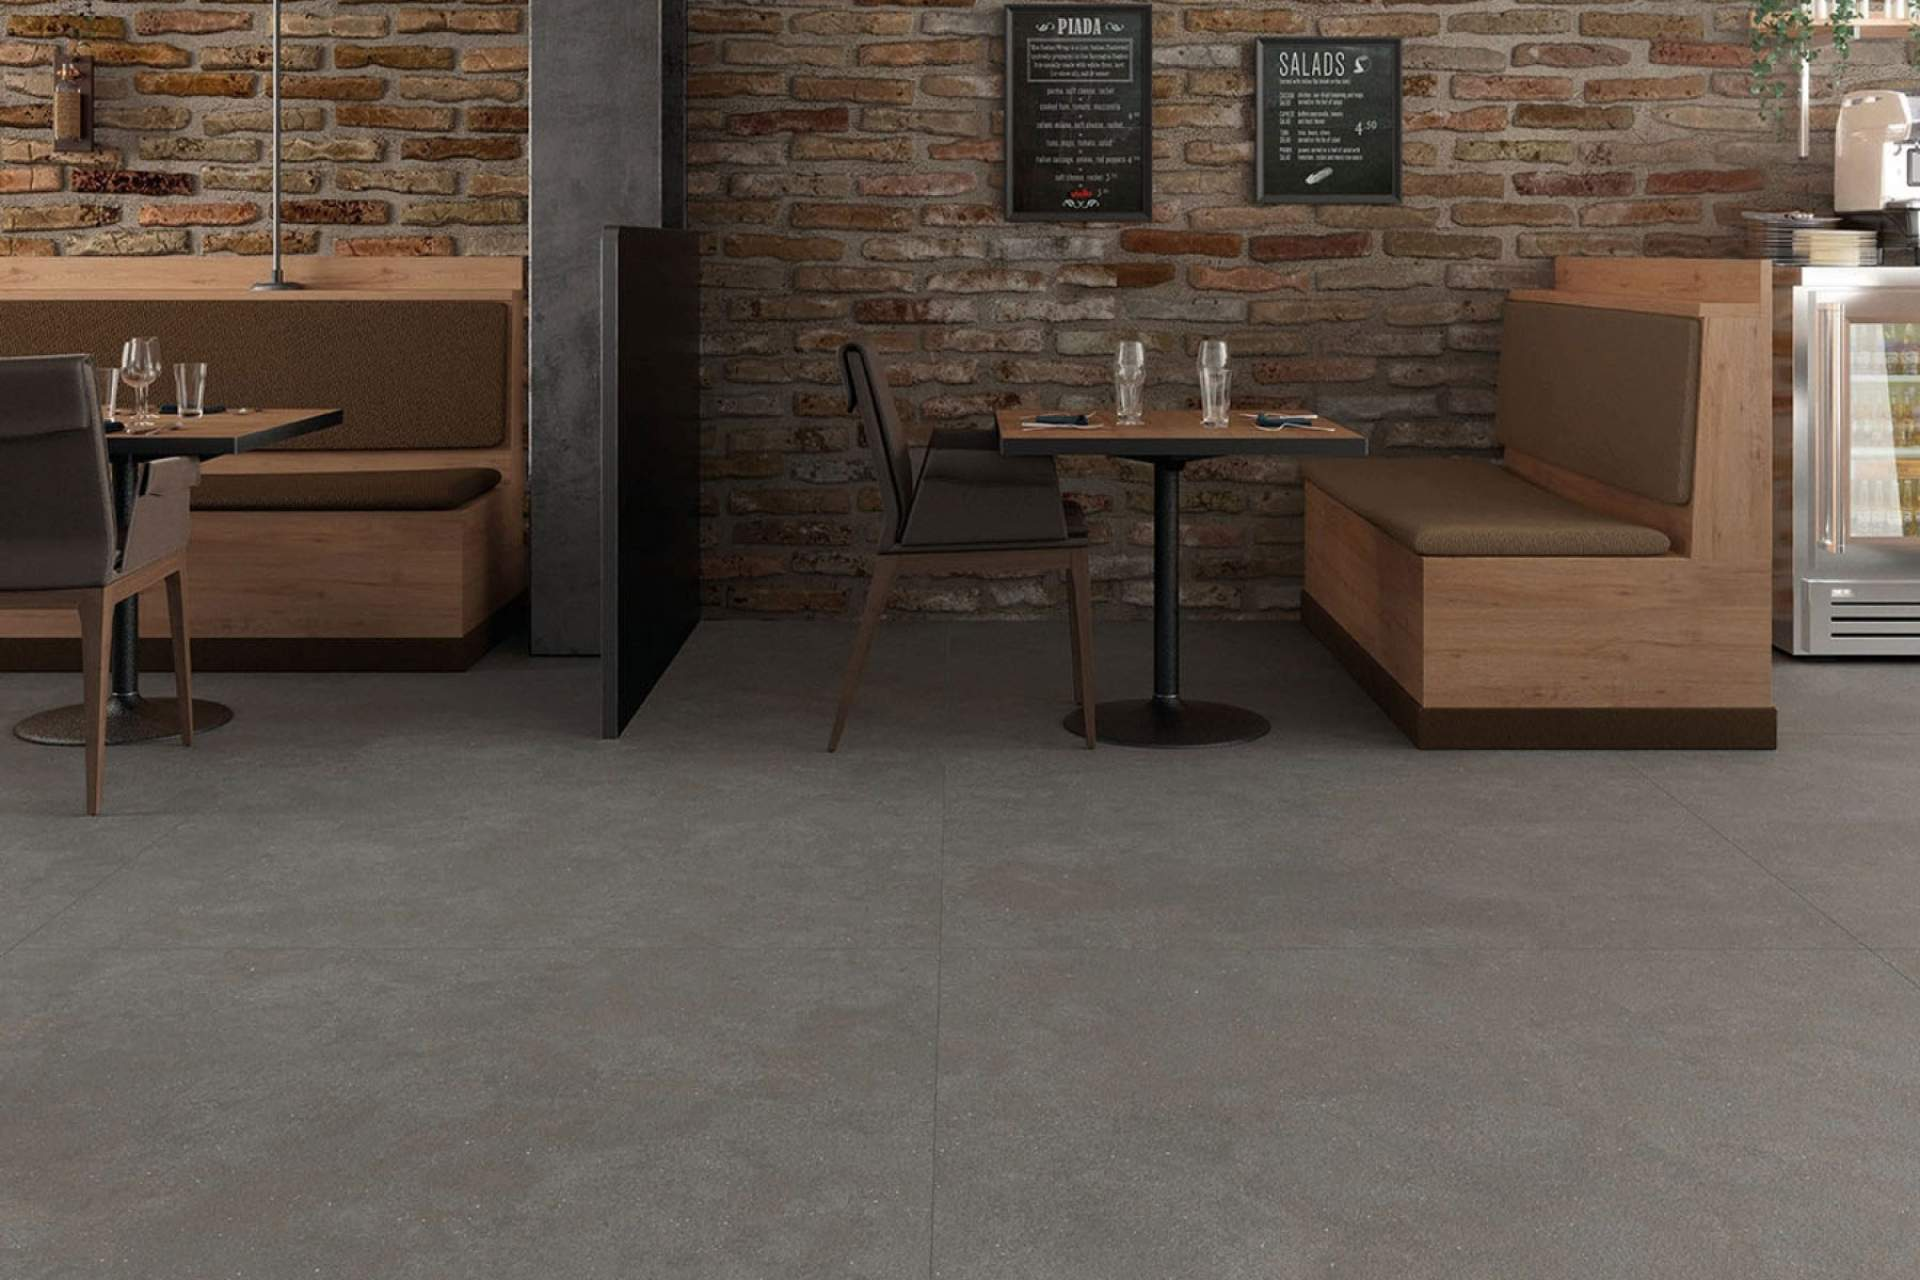 Surface restaurant setting using grey bush hammered tile